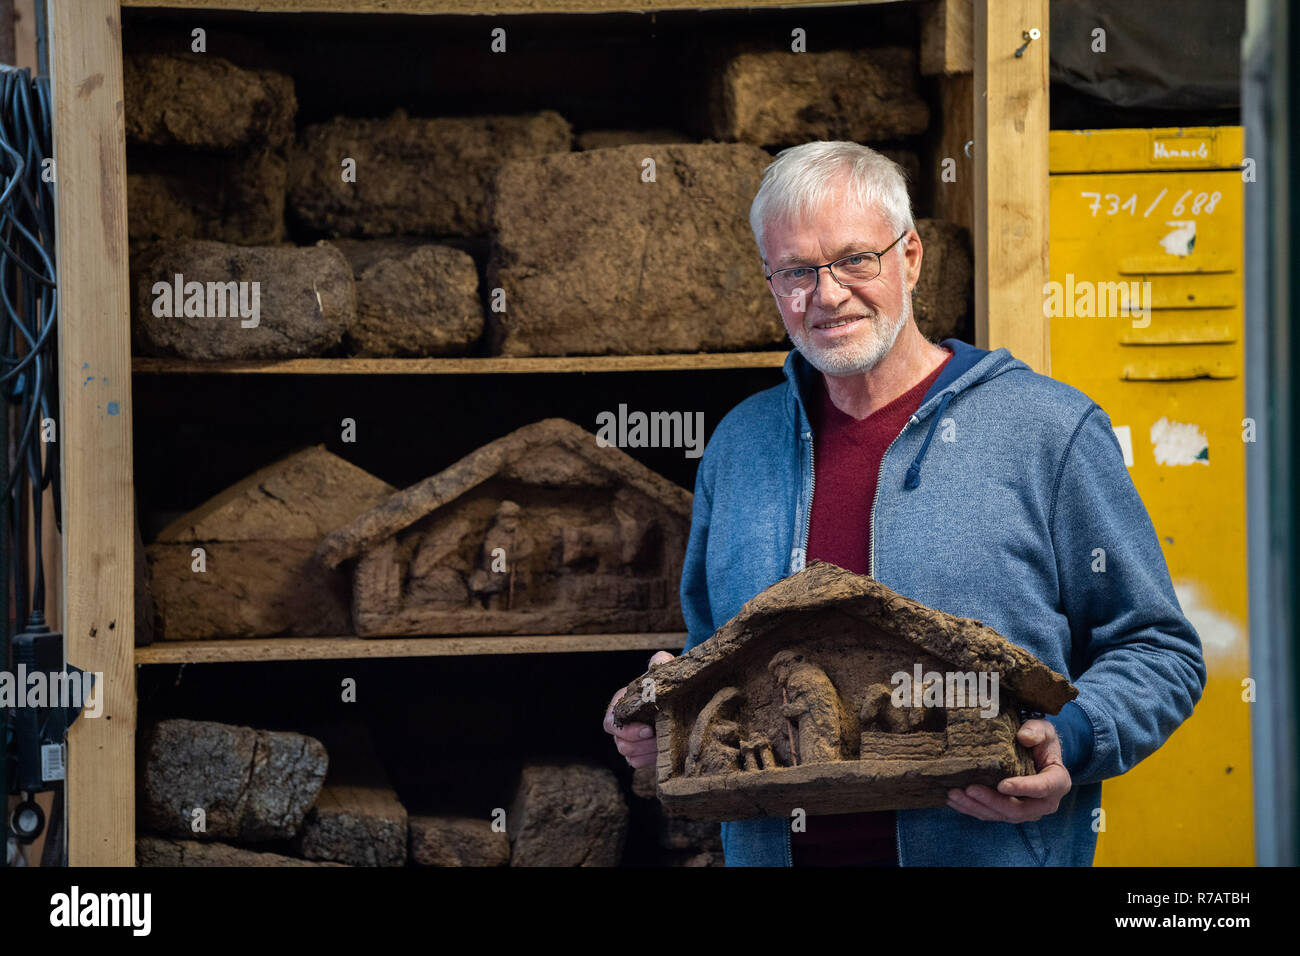 Saterland, Germany. 22nd Nov, 2018. Karl-Heinz Brinkmann holds a Christmas crib carved from peat in front of a shelf with processed and unprocessed peat in his home workshop. The 64 year old Saterland artist works with many materials. But the dried white peat is special: it is 2000 years old. (to dpa '2000 years old: Christmas cribs from peat' from 09.12.2018) Credit: Mohssen Assanimoghaddam/dpa/Alamy Live News - Stock Image